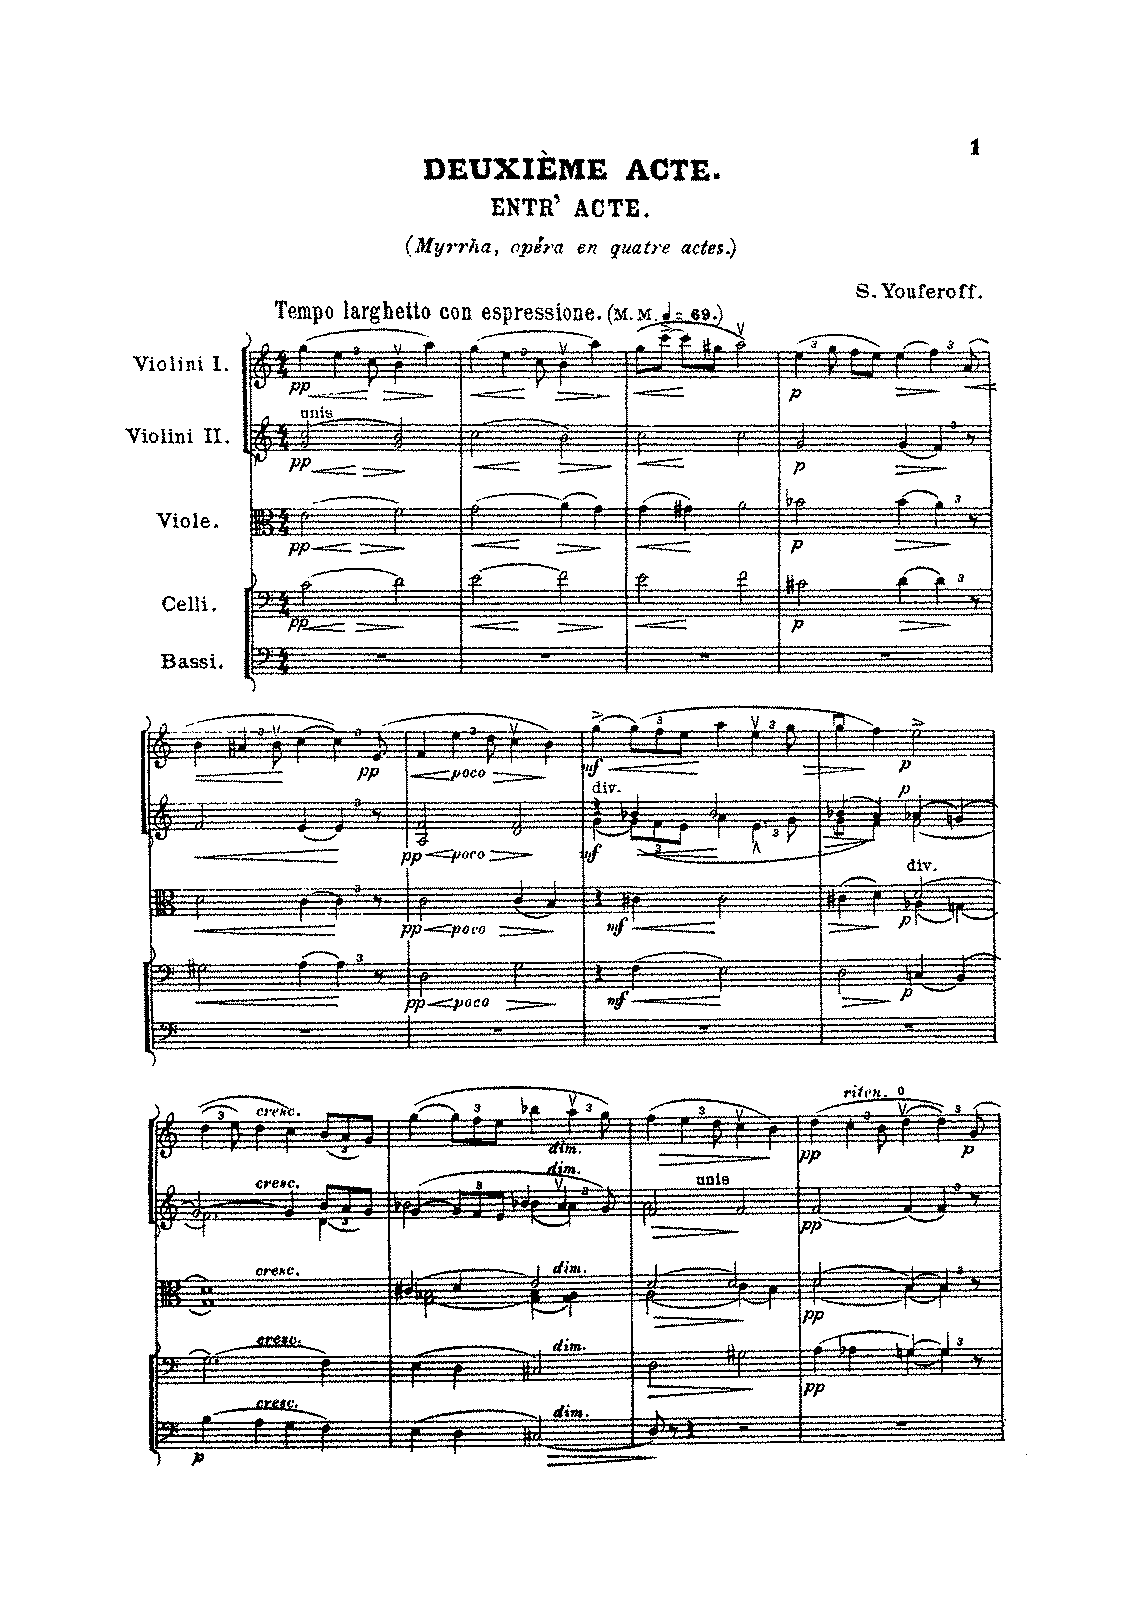 PMLP95219-Yuferov Interlude from Act II of 'Myrrha' for strings.pdf